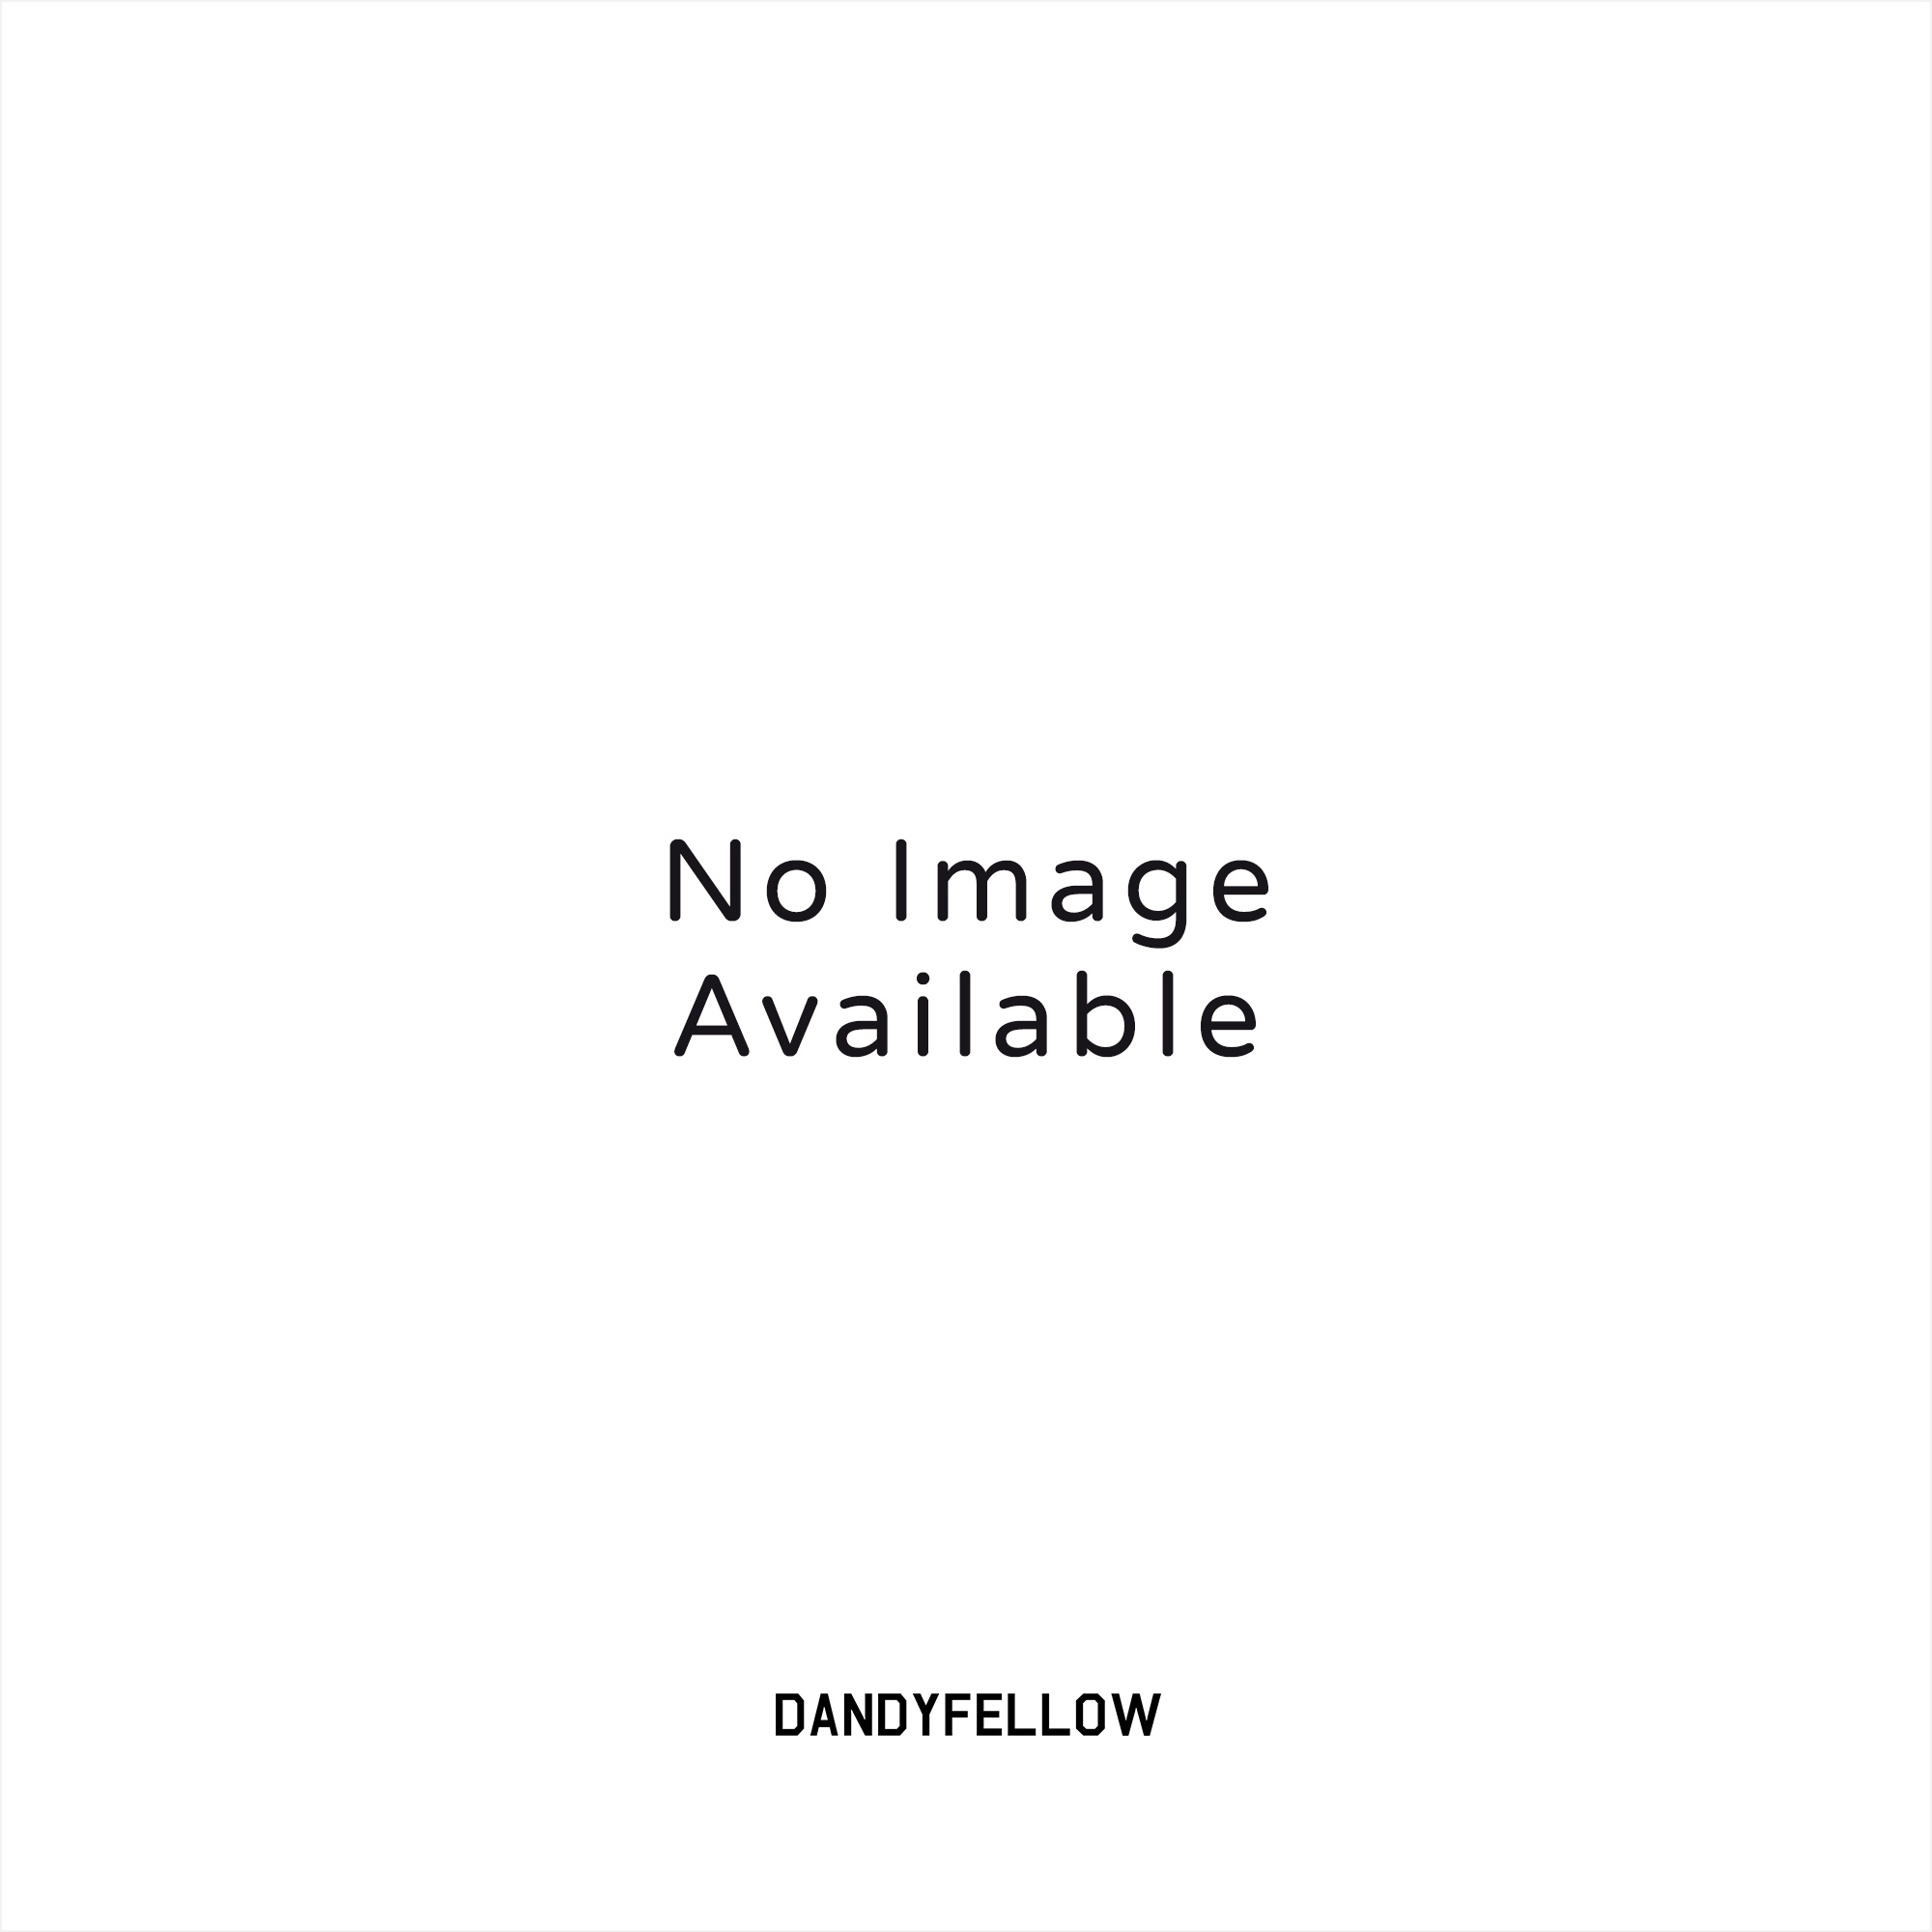 Indigo Svante Worker Shirt